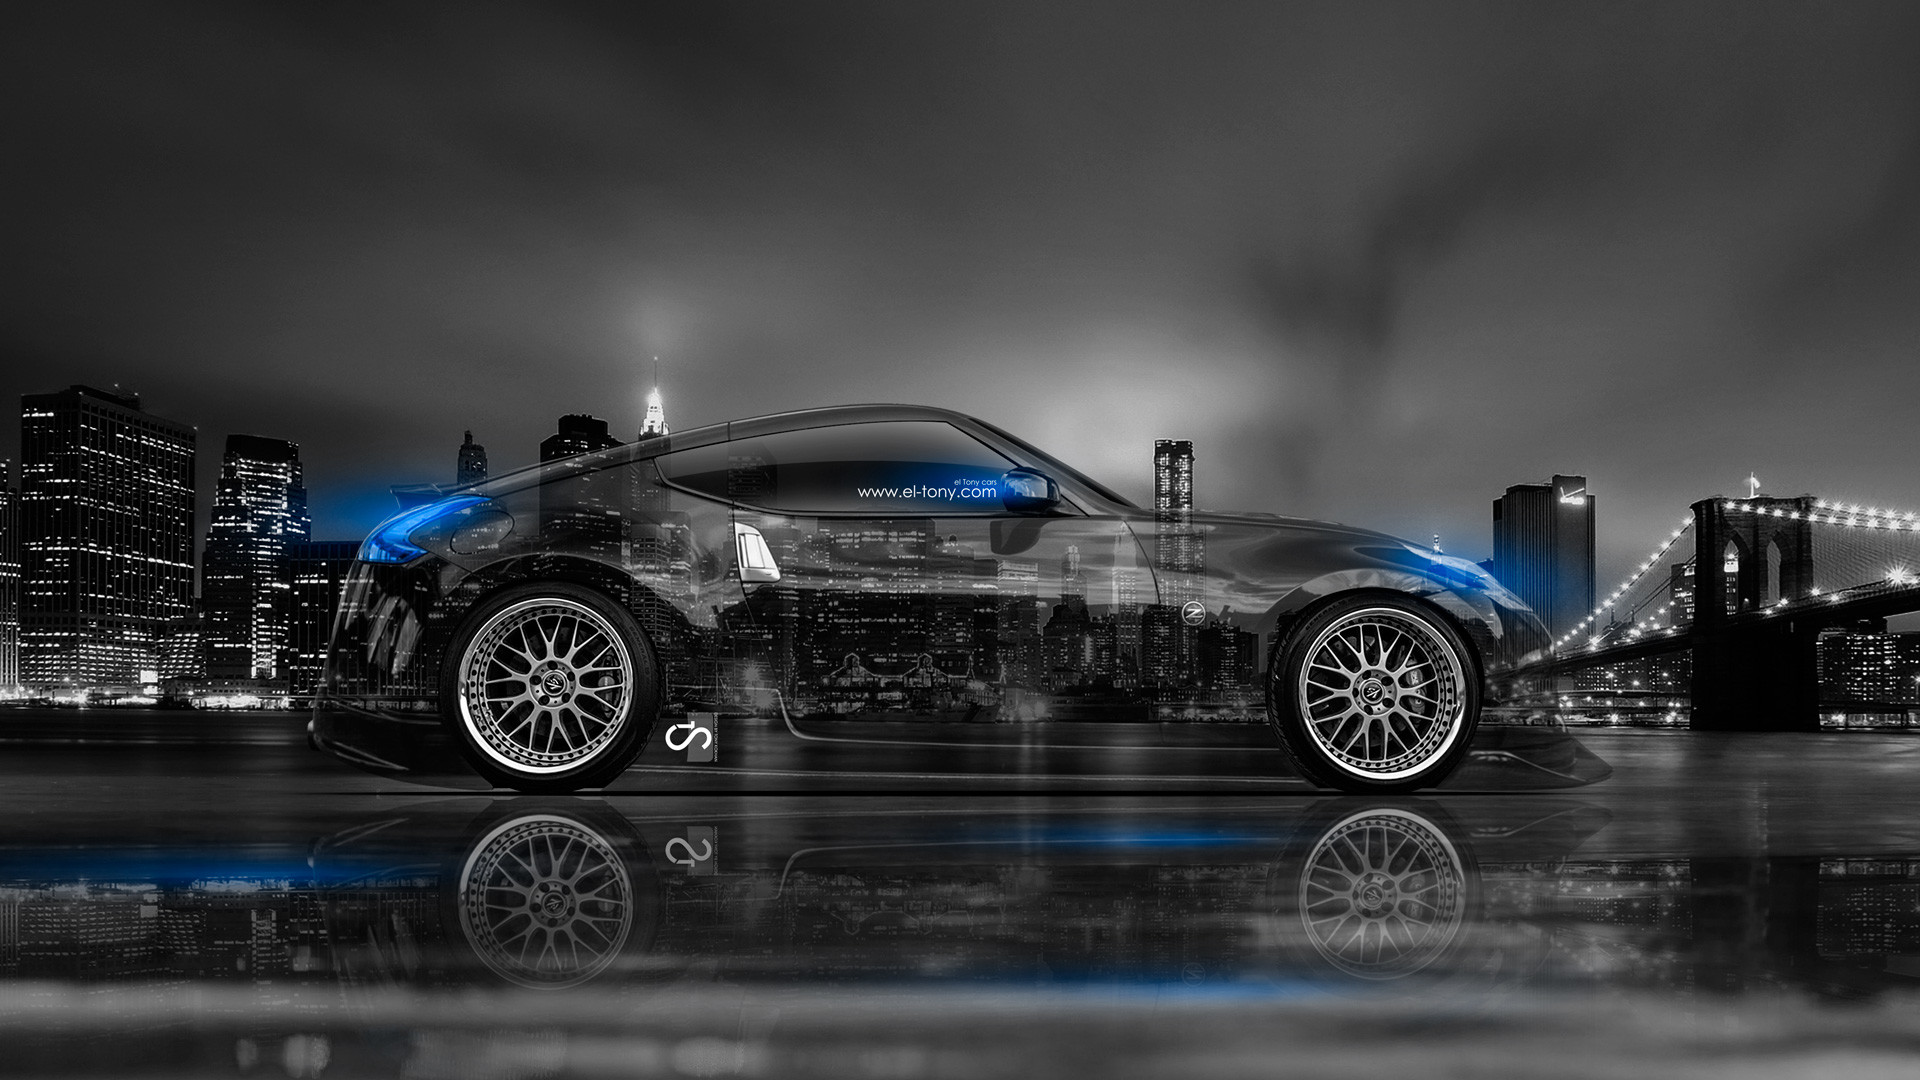 370Z Nismo Wallpaper (65+ images)